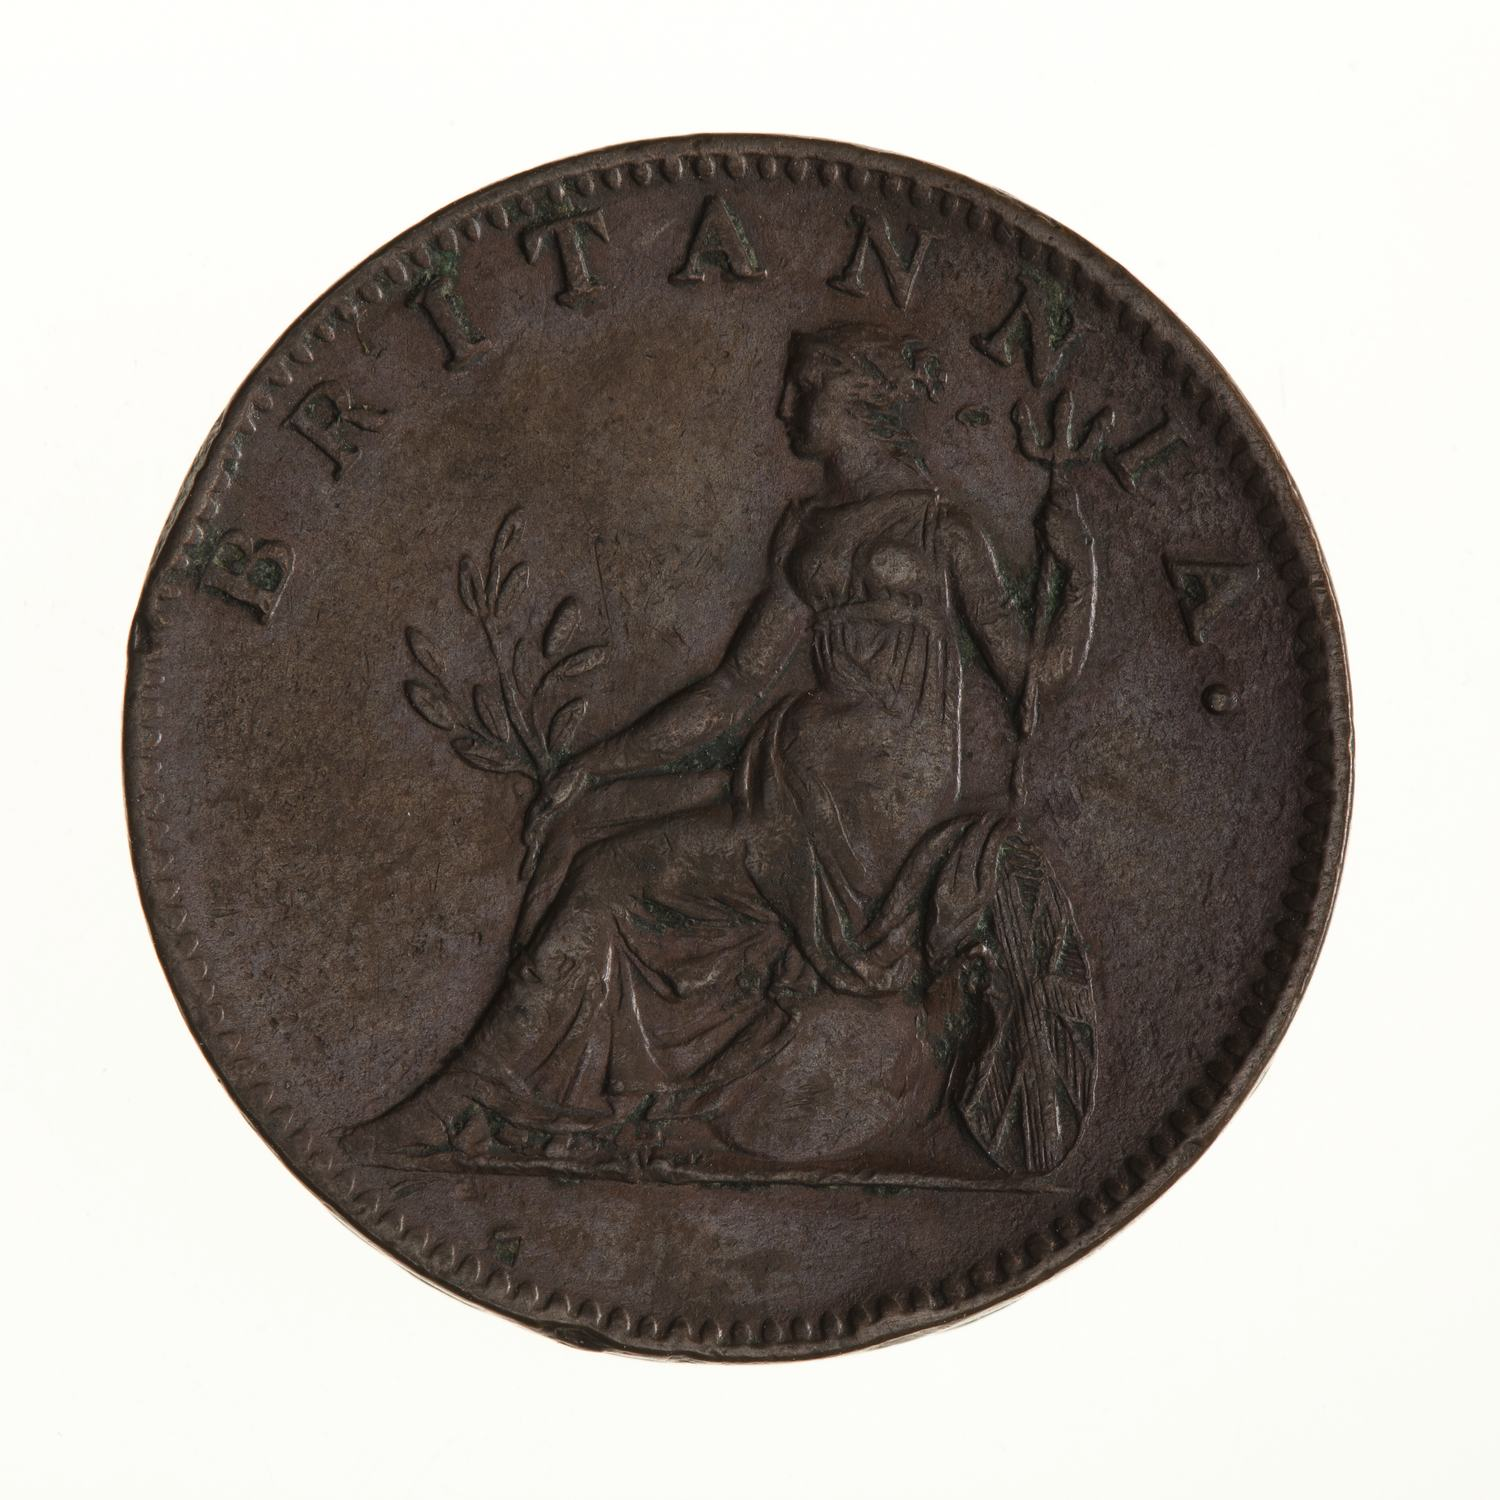 Two Lepta 1819: Photo Coin - 2 Lepta, Ionian Islands, Greece, 1819